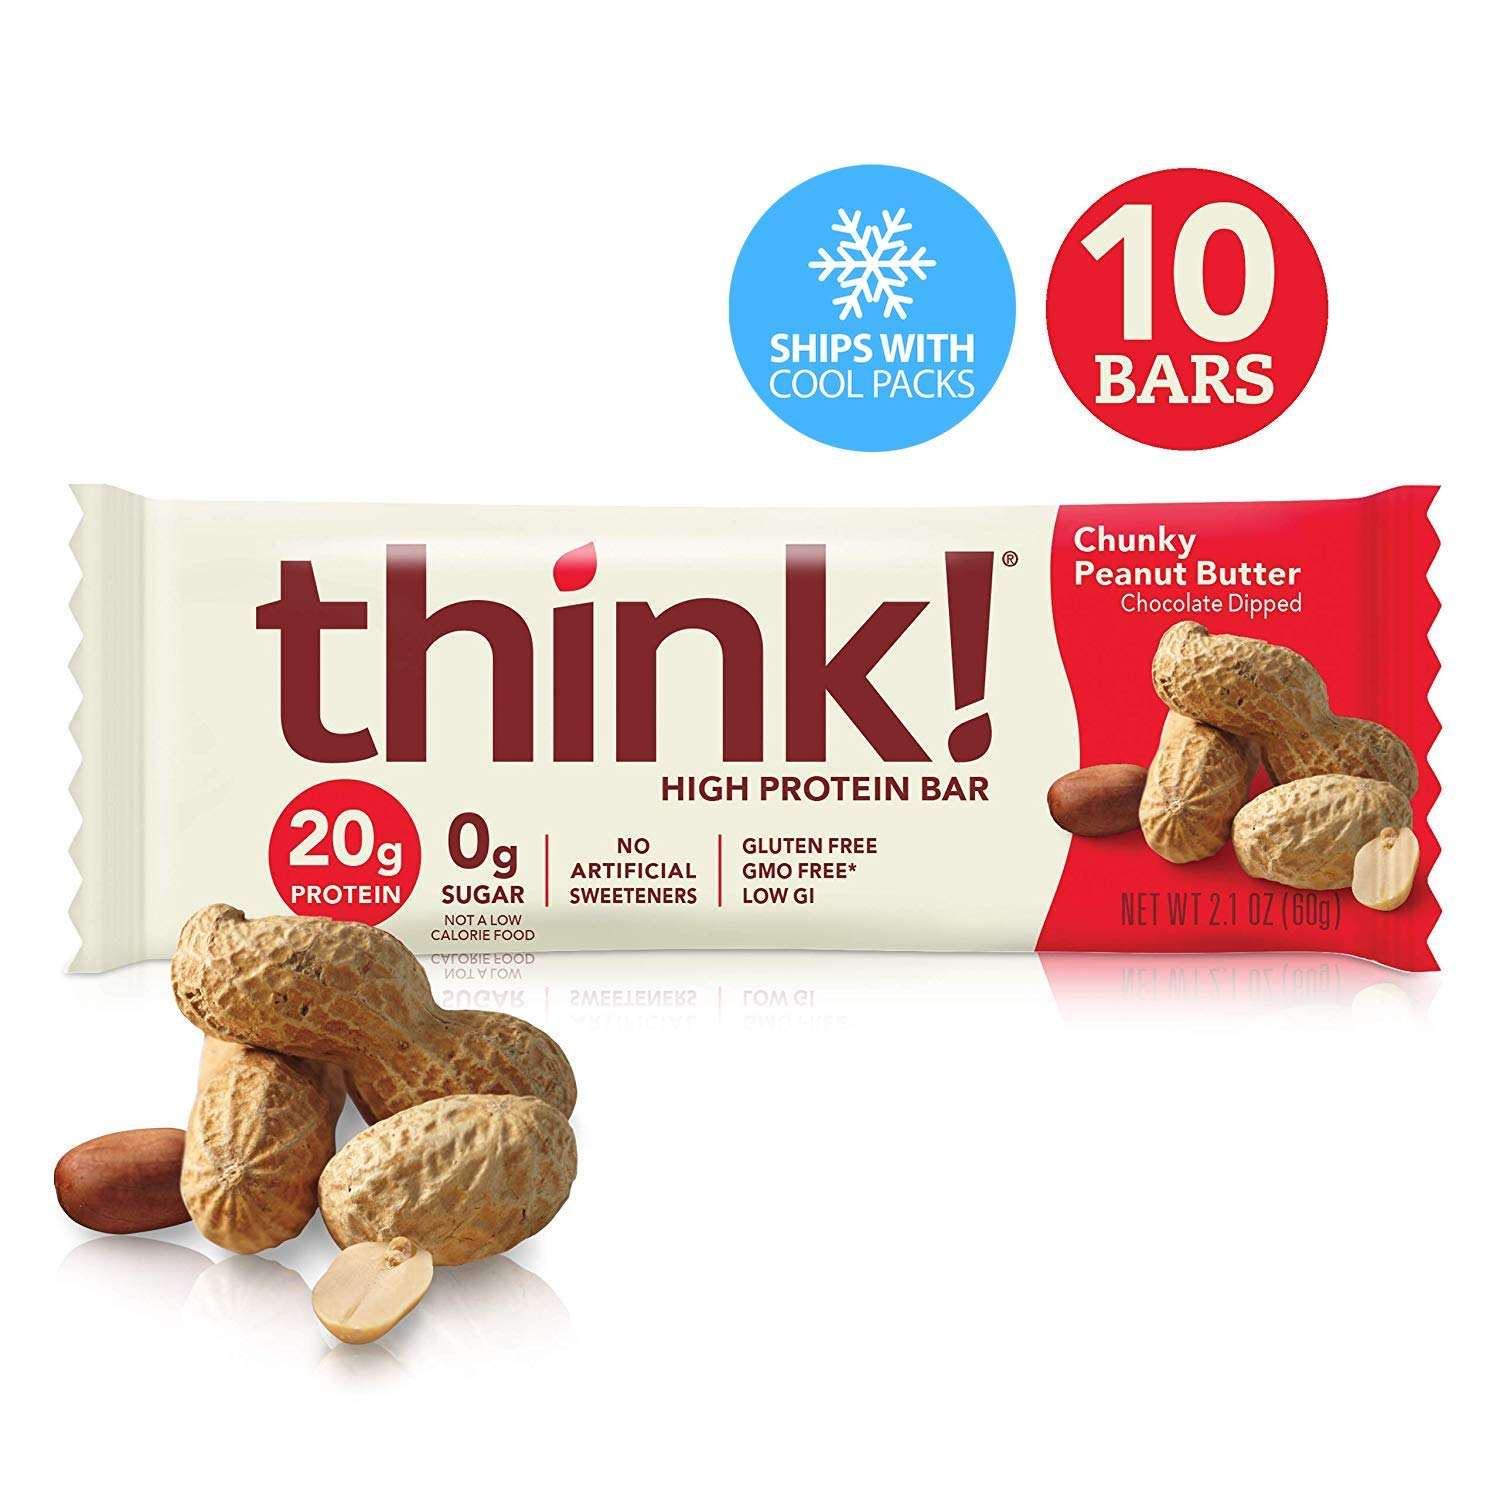 think! (thinkThin) High Protein Bars - Chunky Peanut Butter, 20g Protein, 0g Sugar, No Artificial Sweeteners, Gluten Free, GMO Free*, 2.1 oz bar (10Count - Packaging May Vary) by thinkThin